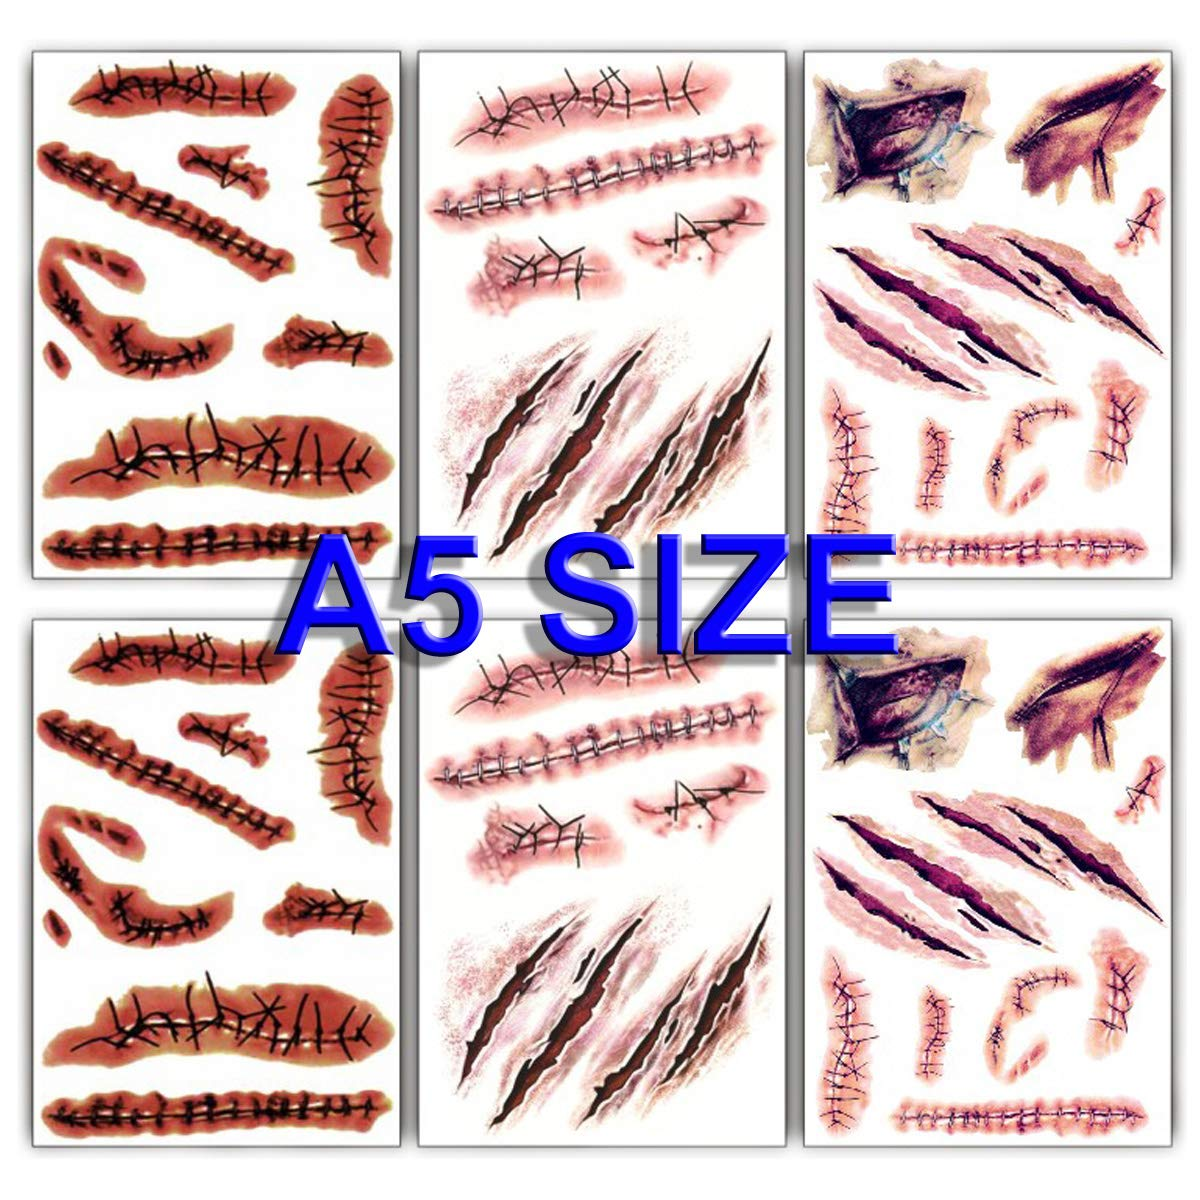 Large Size 2021 spring and summer new Halloween Temporary Tattoos Stitch Bloody Fake Wound Arlington Mall